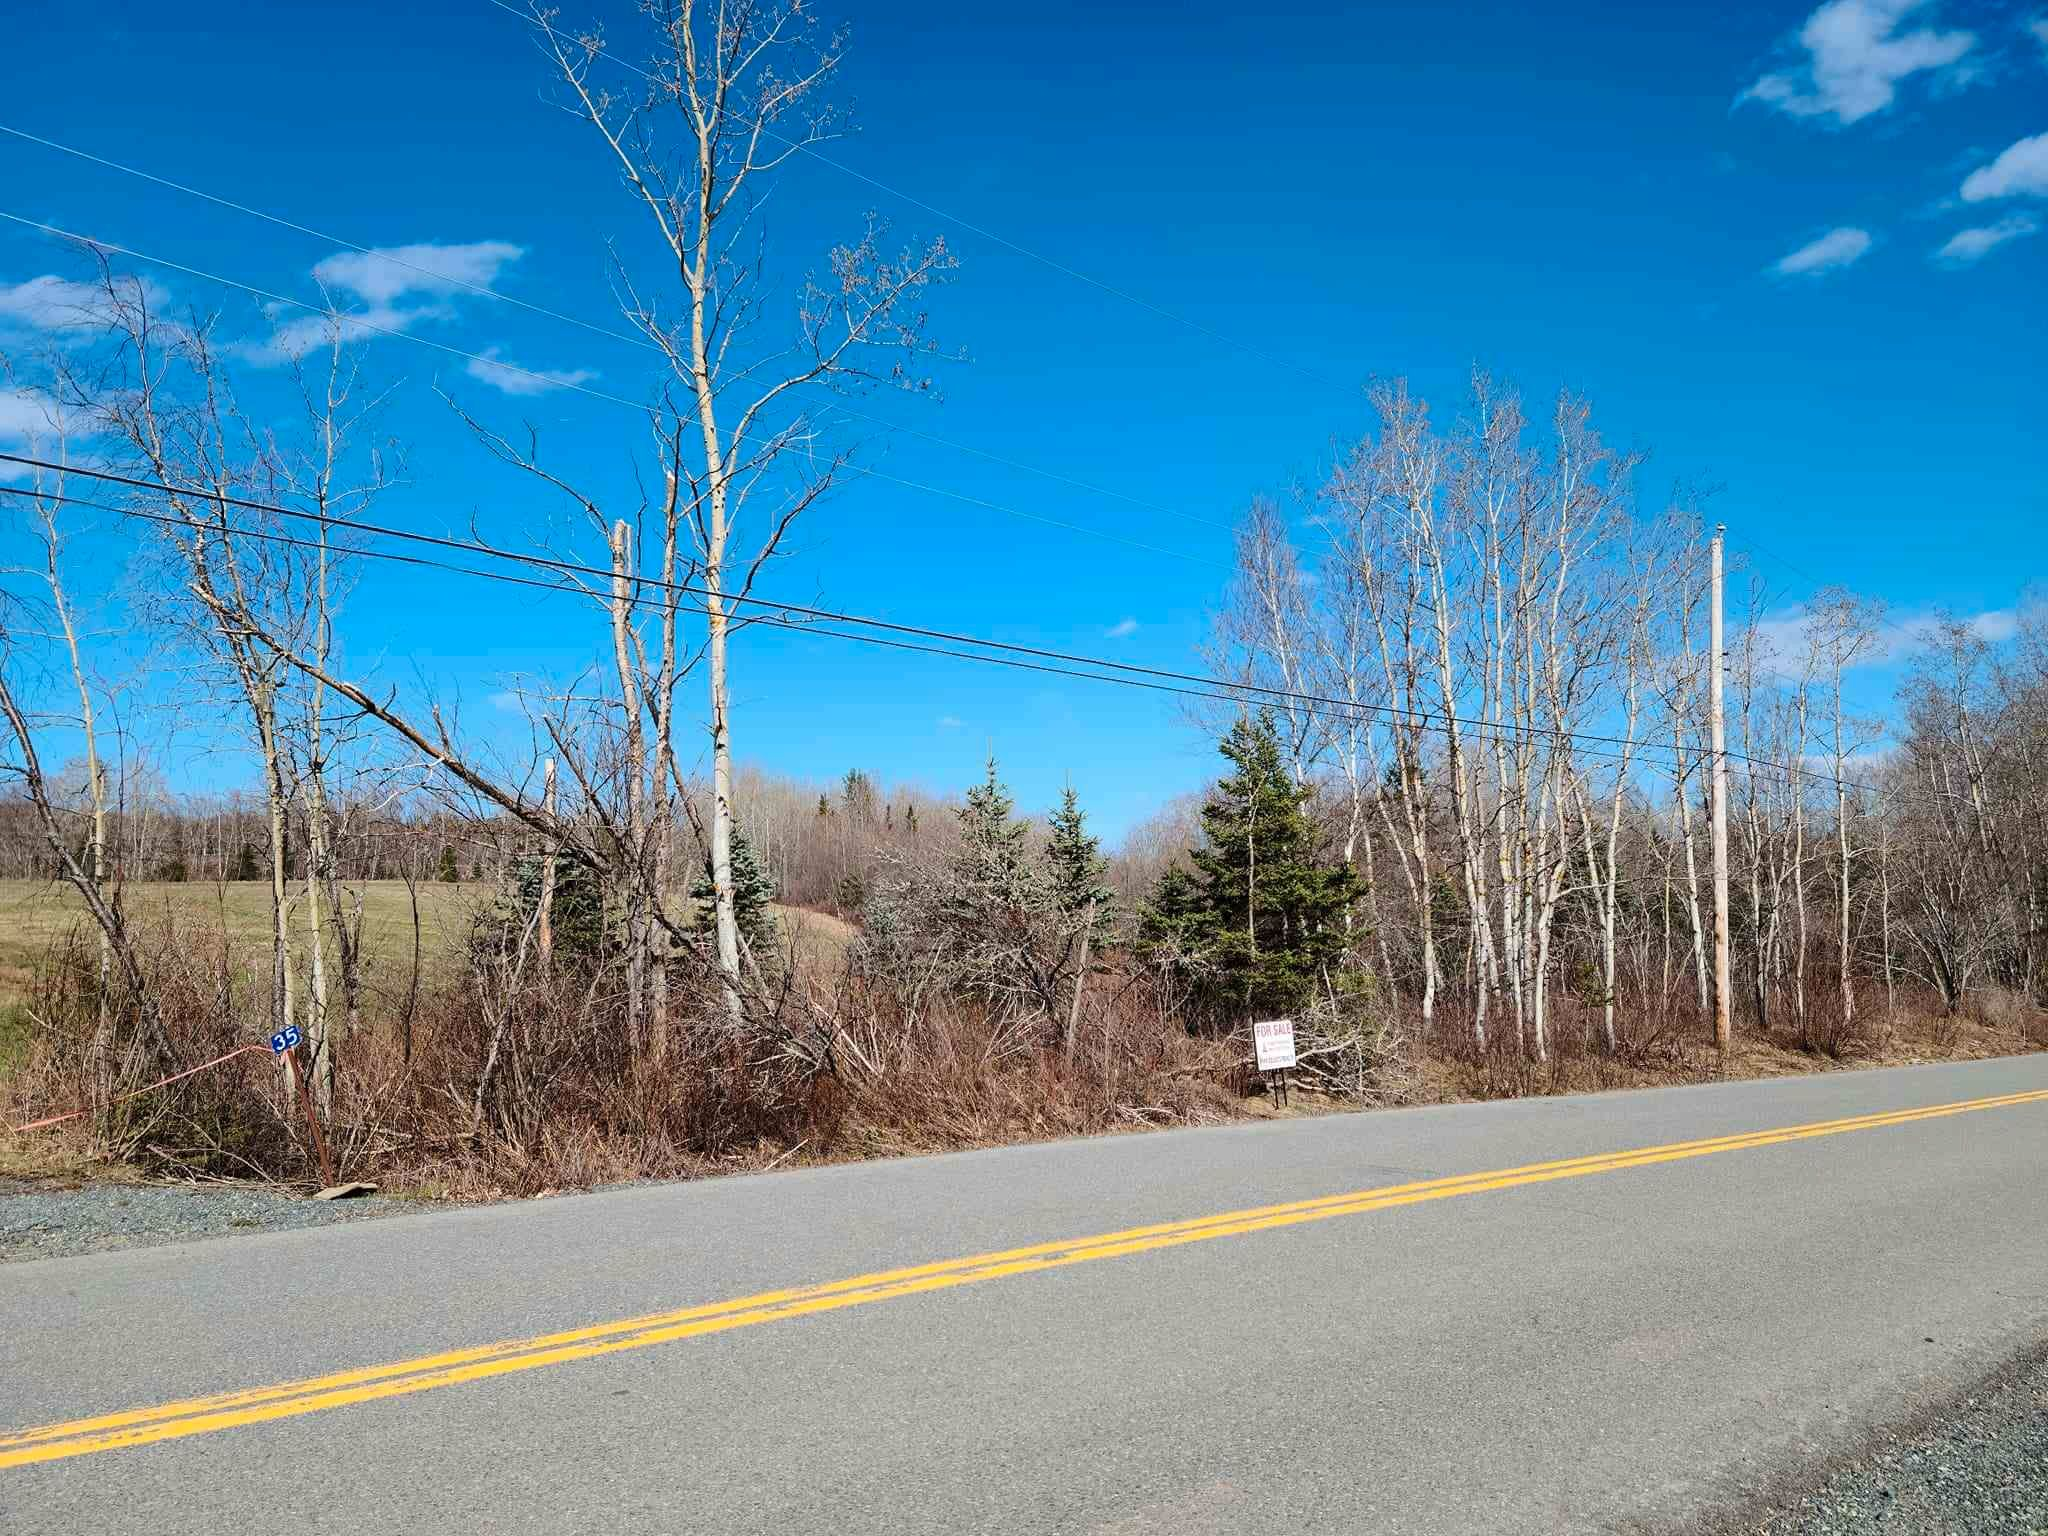 Main Photo: 35 Valley Road in Westchester Station: 103-Malagash, Wentworth Vacant Land for sale (Northern Region)  : MLS®# 202109984